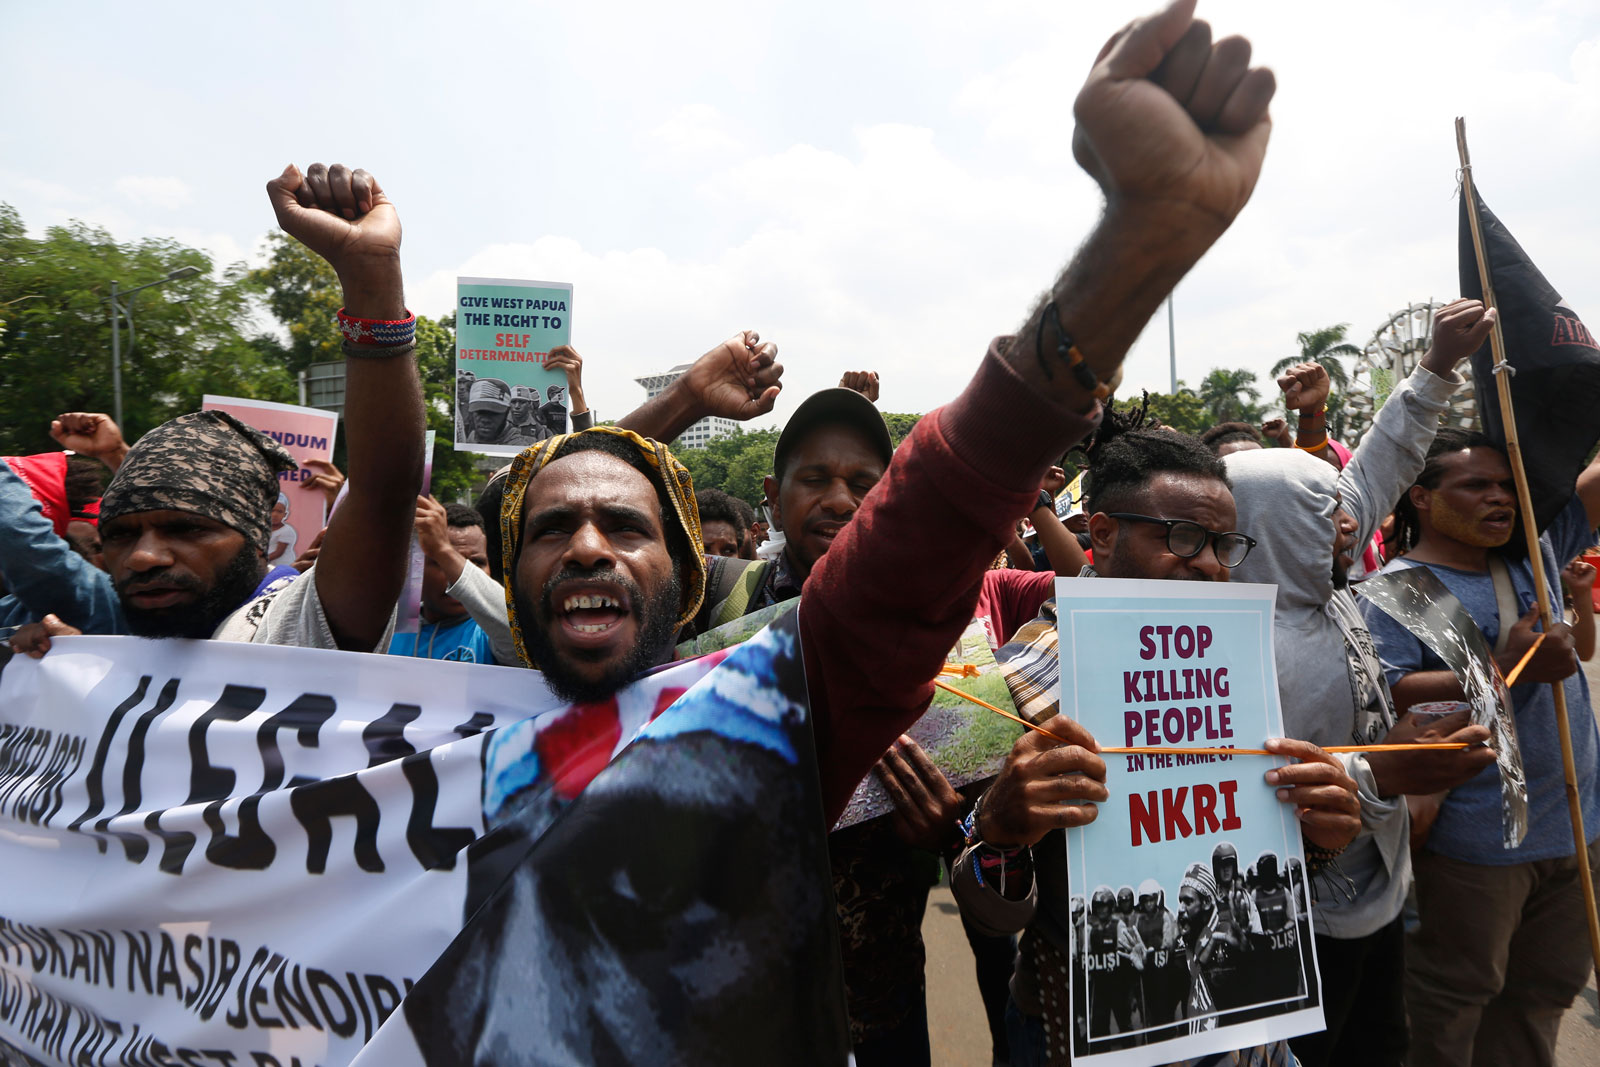 West Papuan activists shout anti-Indonesia slogans during a rally at a main street in Jakarta, Indonesia, 19 December 2018. Dozens of West Papuan activists staged a rally demanding the right to self-determination for West Papua. EPA-EFE/ADI WEDA